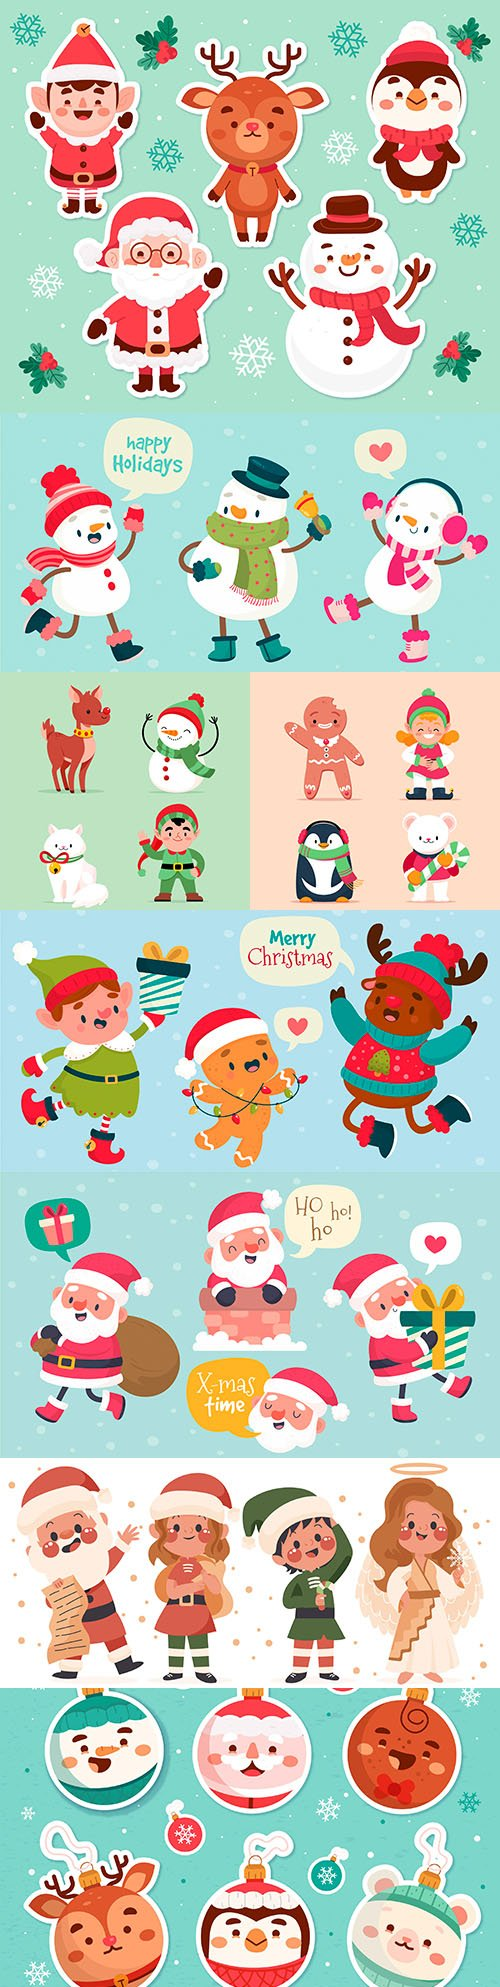 Collection of painted Christmas characters and cartoon design icons